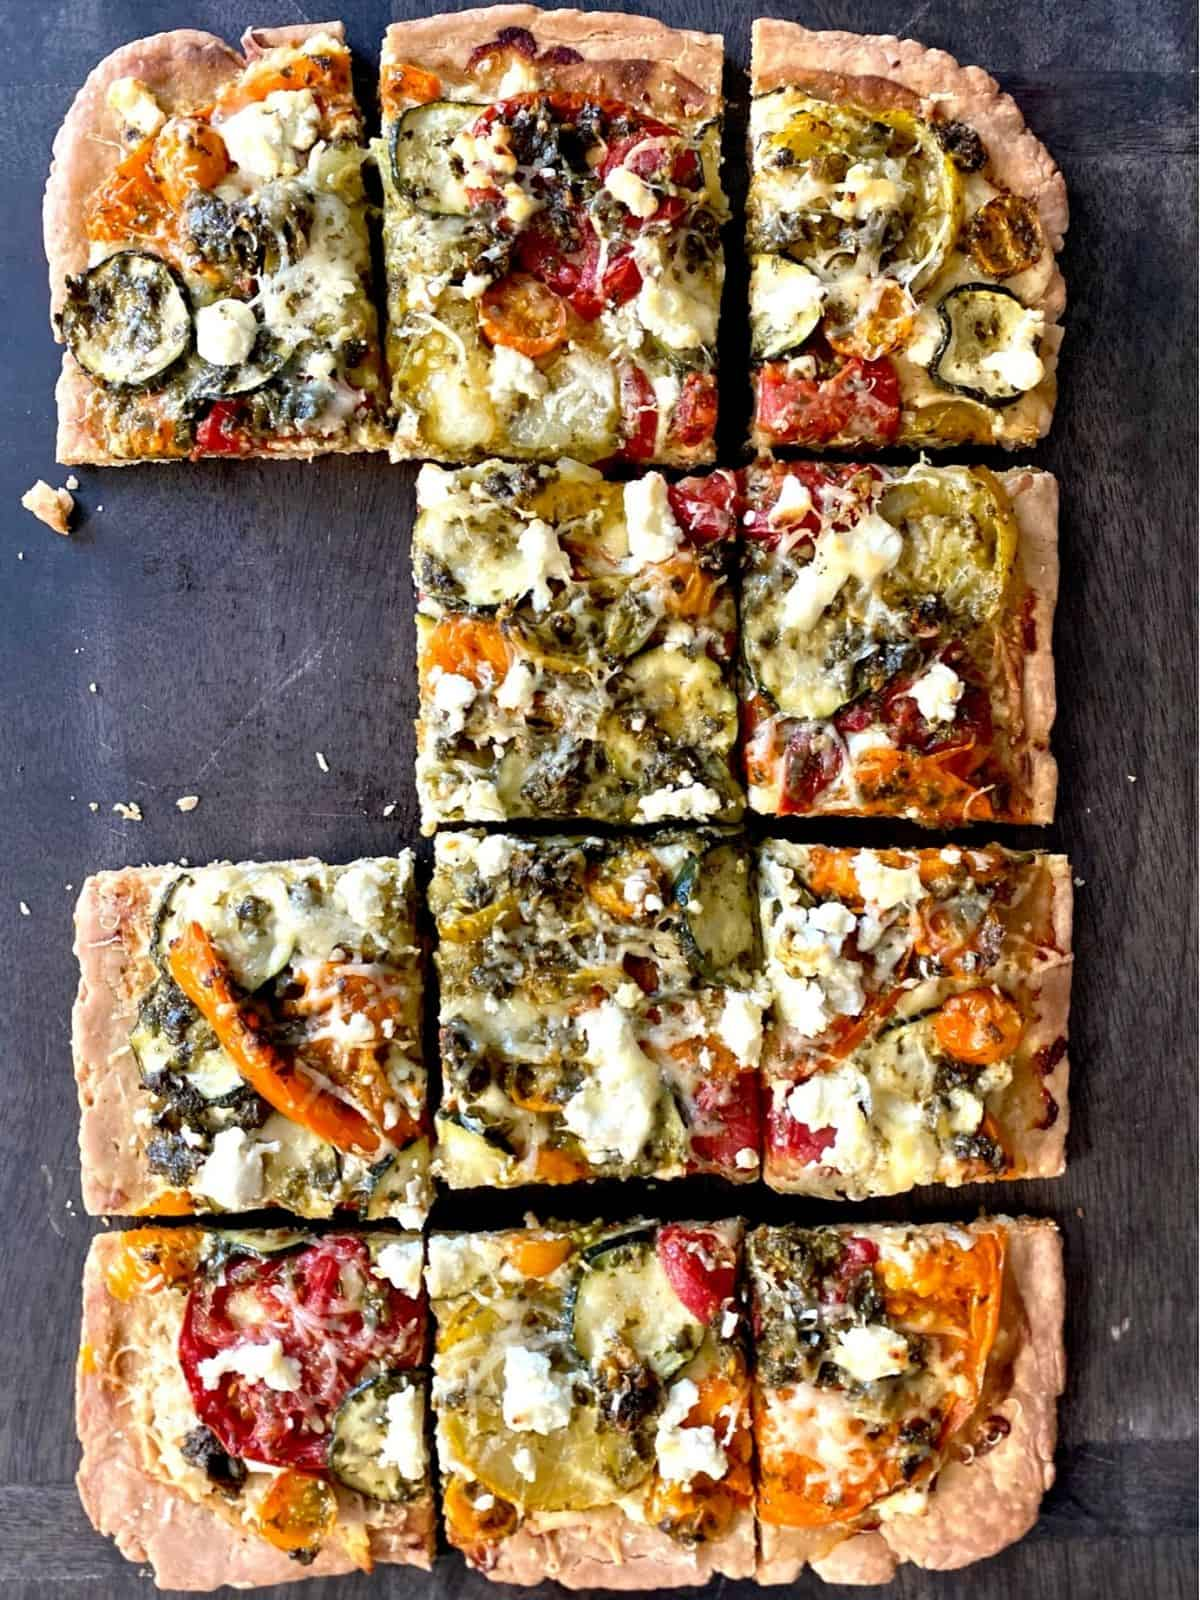 baked garden tart with piece missing